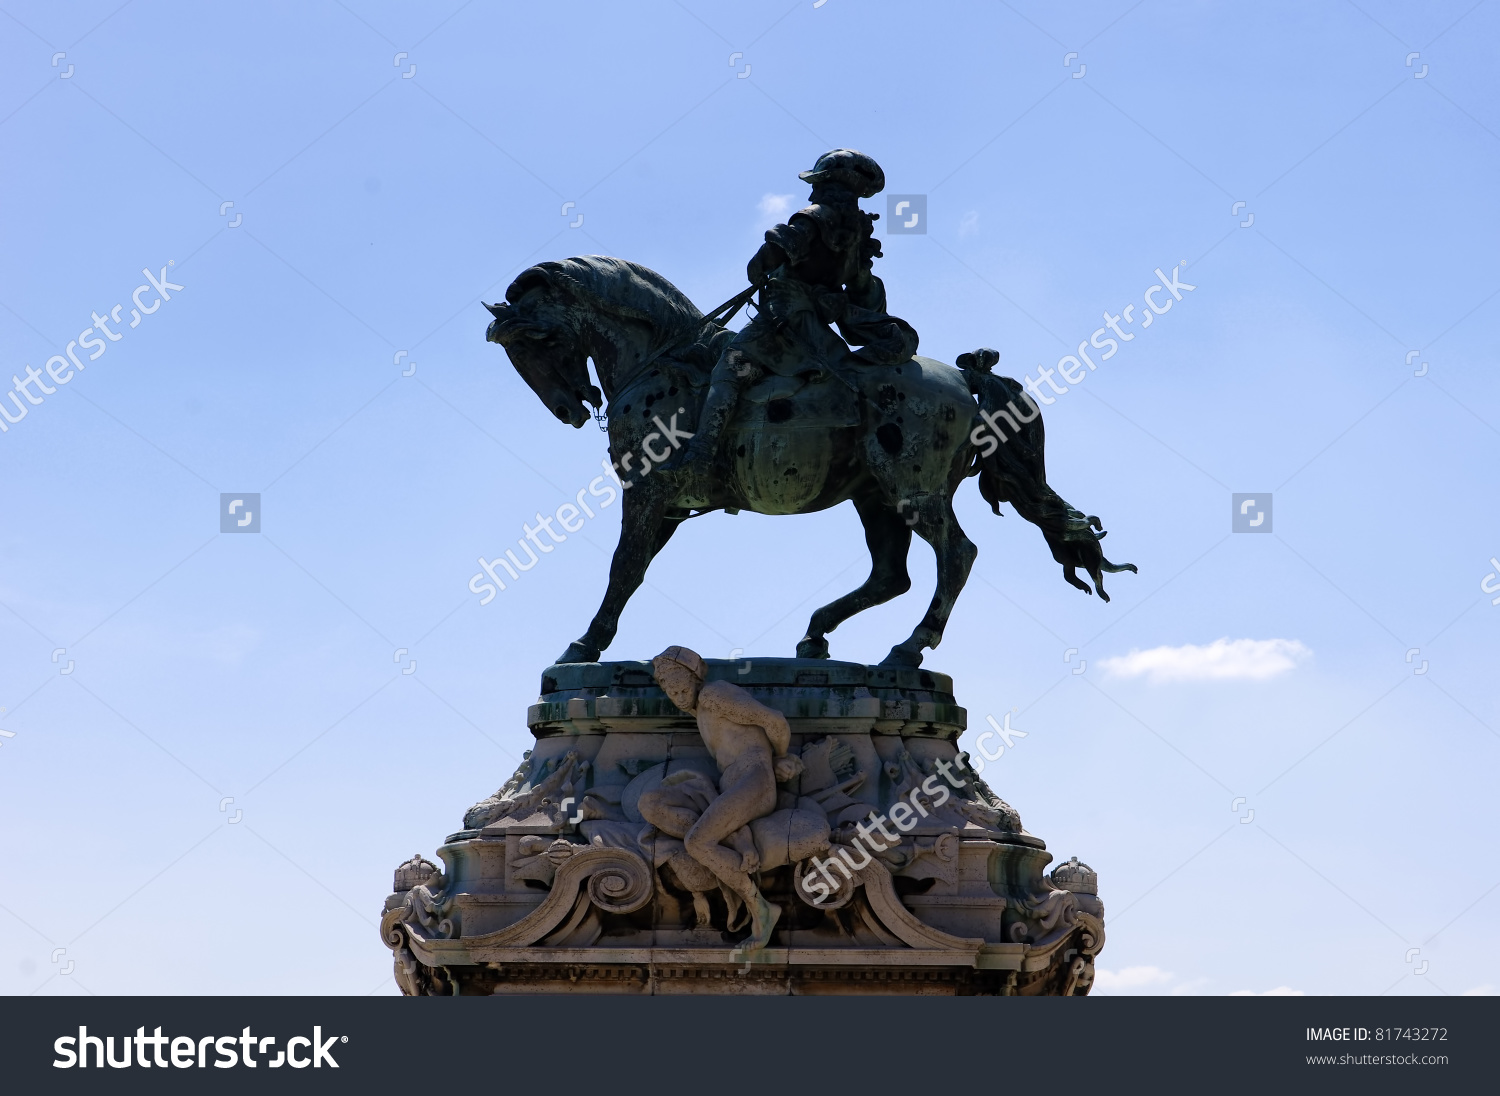 Silhouette Of Statue, Prince Eugene Of Savoy, Budapest Stock Photo.